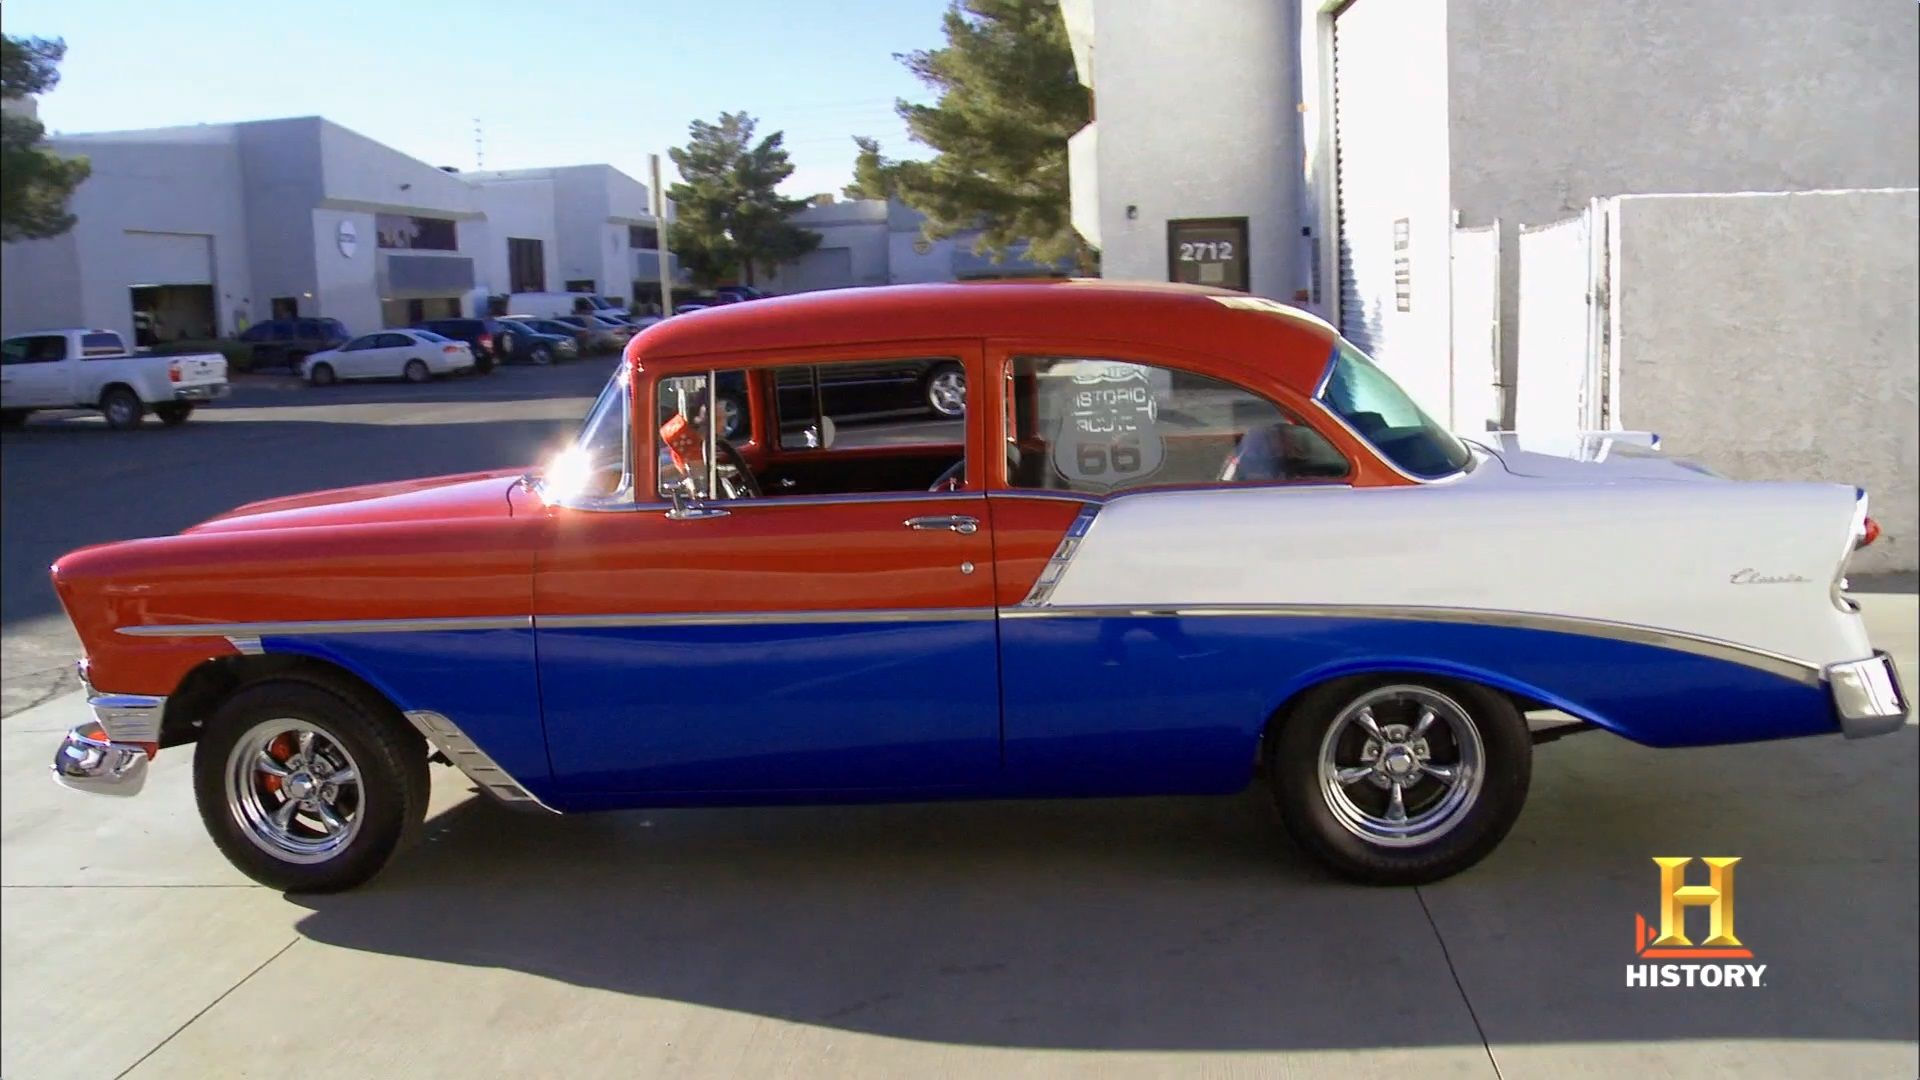 56 chevy route 66 theme counts kustoms on counting cars side view